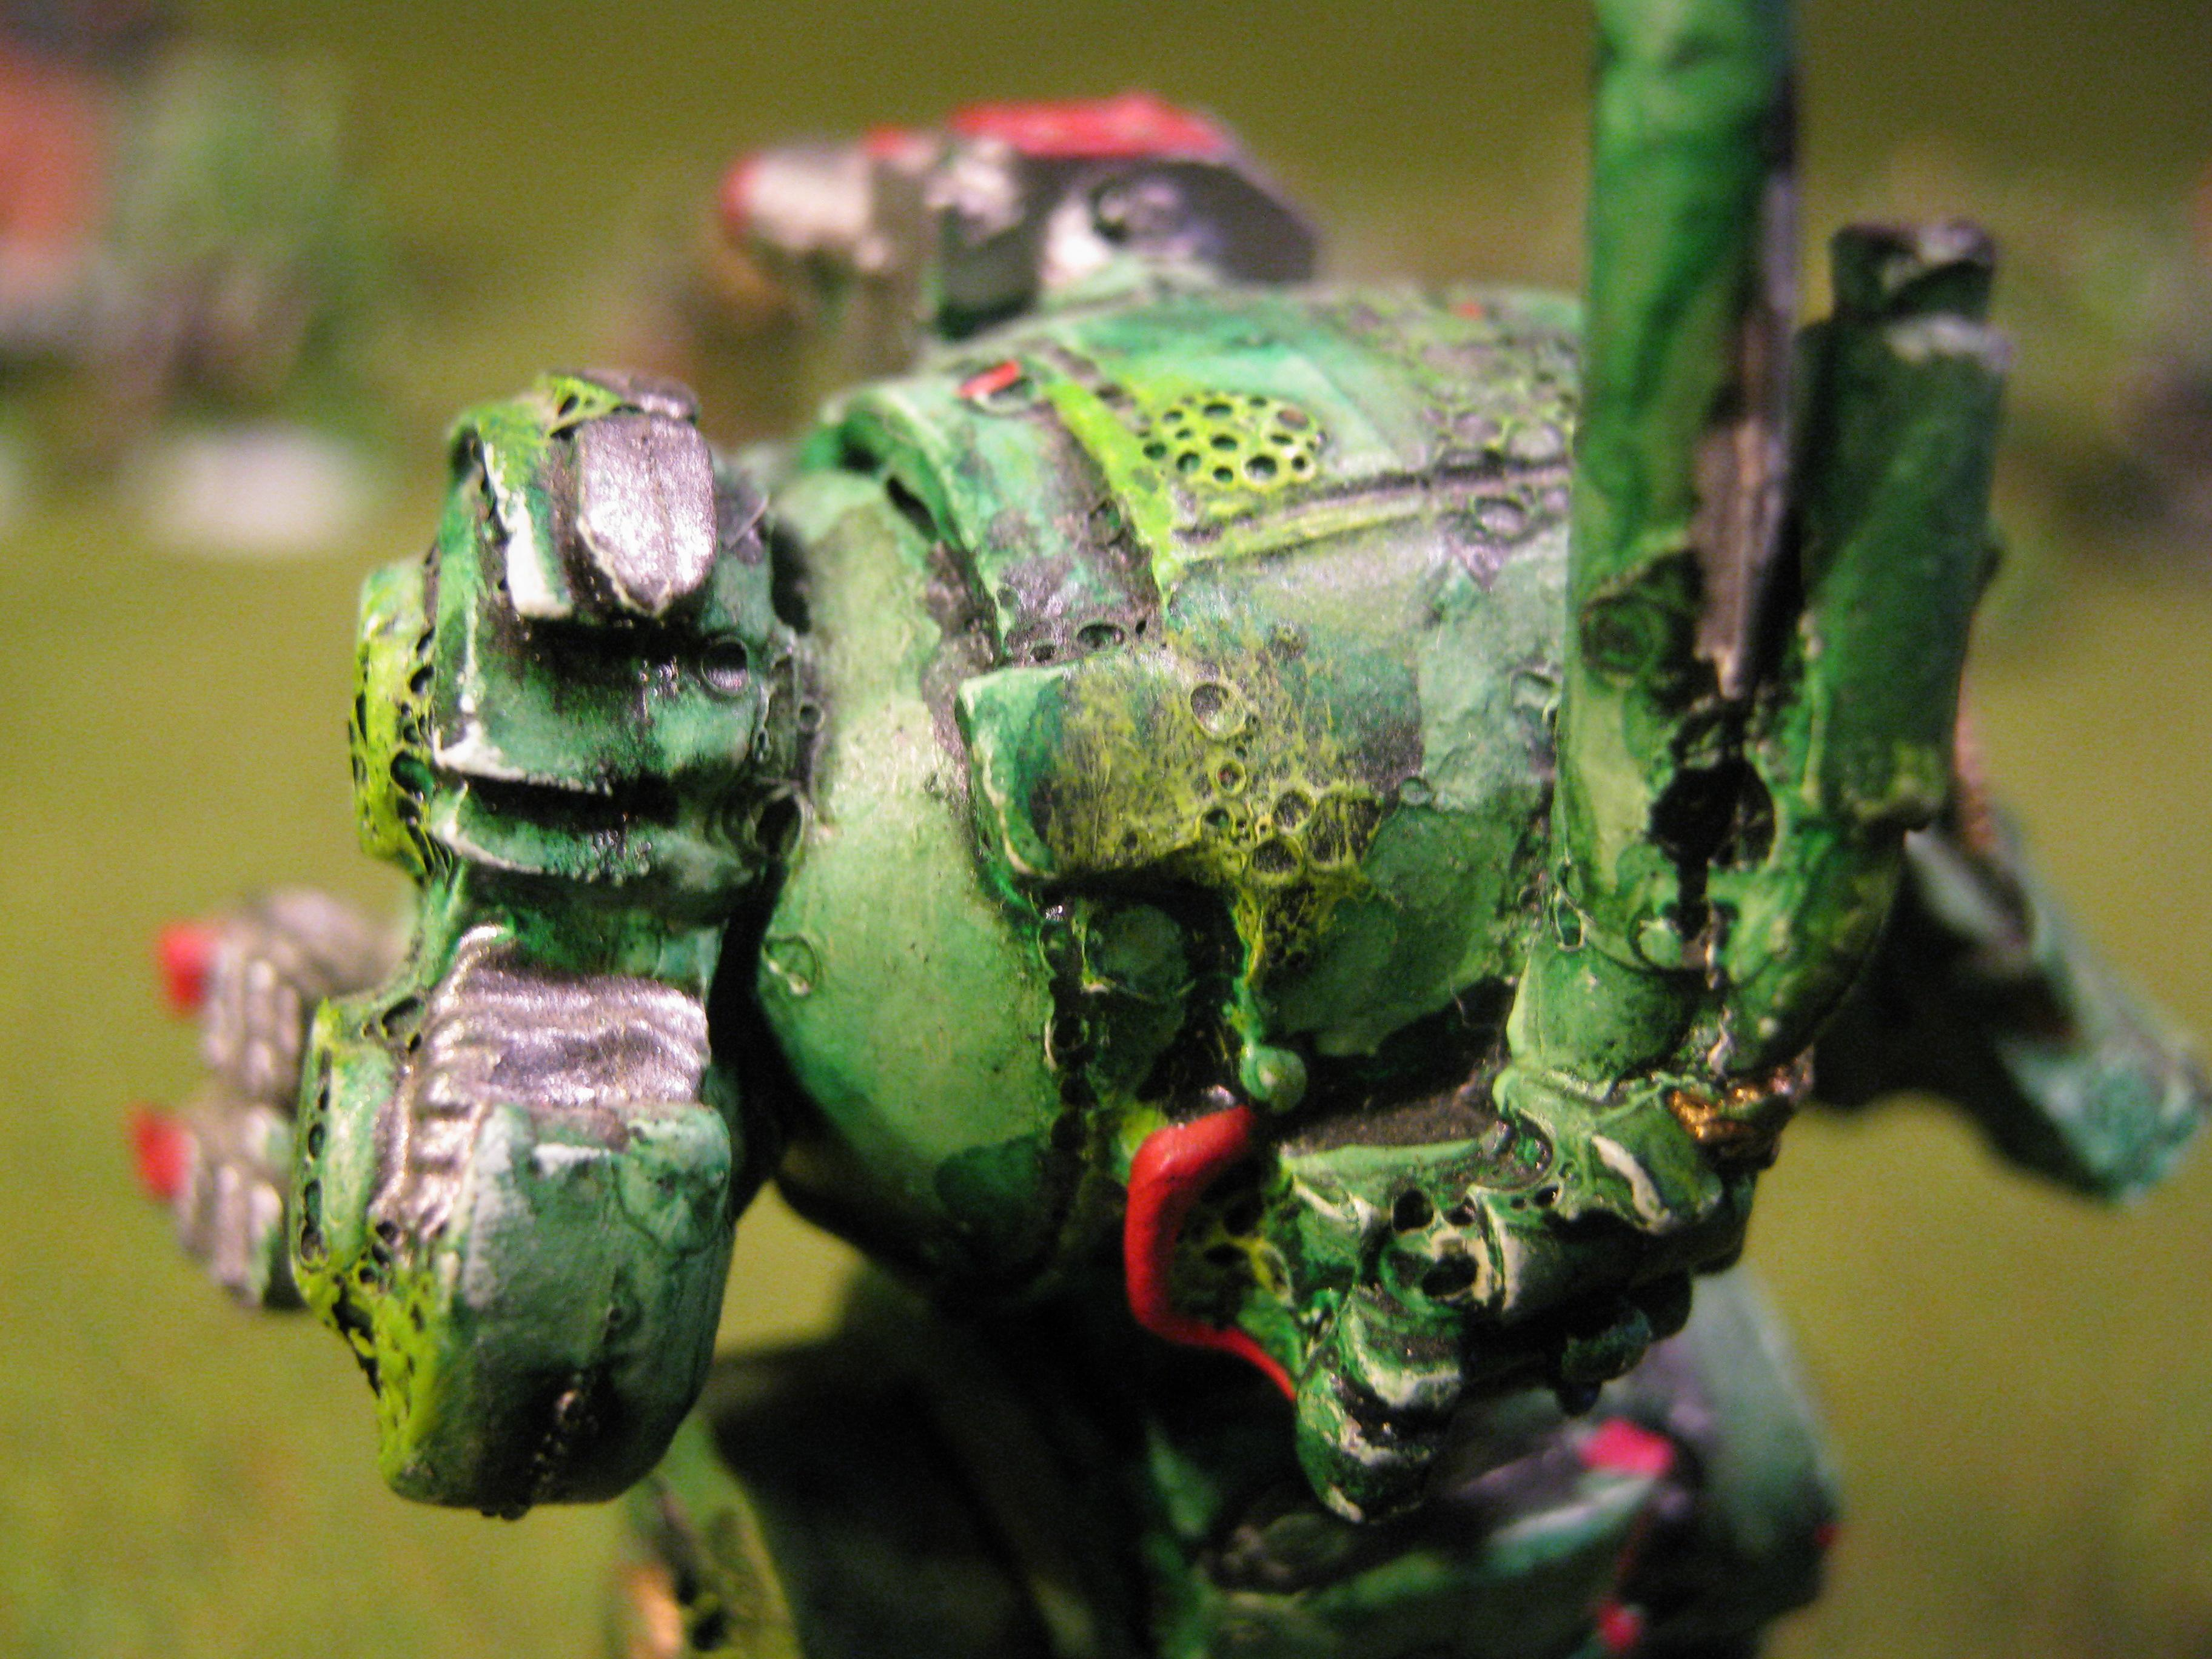 Chaos, Chaos Dreadnought, Chaos Space Marines, Death Guard, Nurgle, Out Of Production, Plague Marines, Rogue Trader, Warhammer 40,000